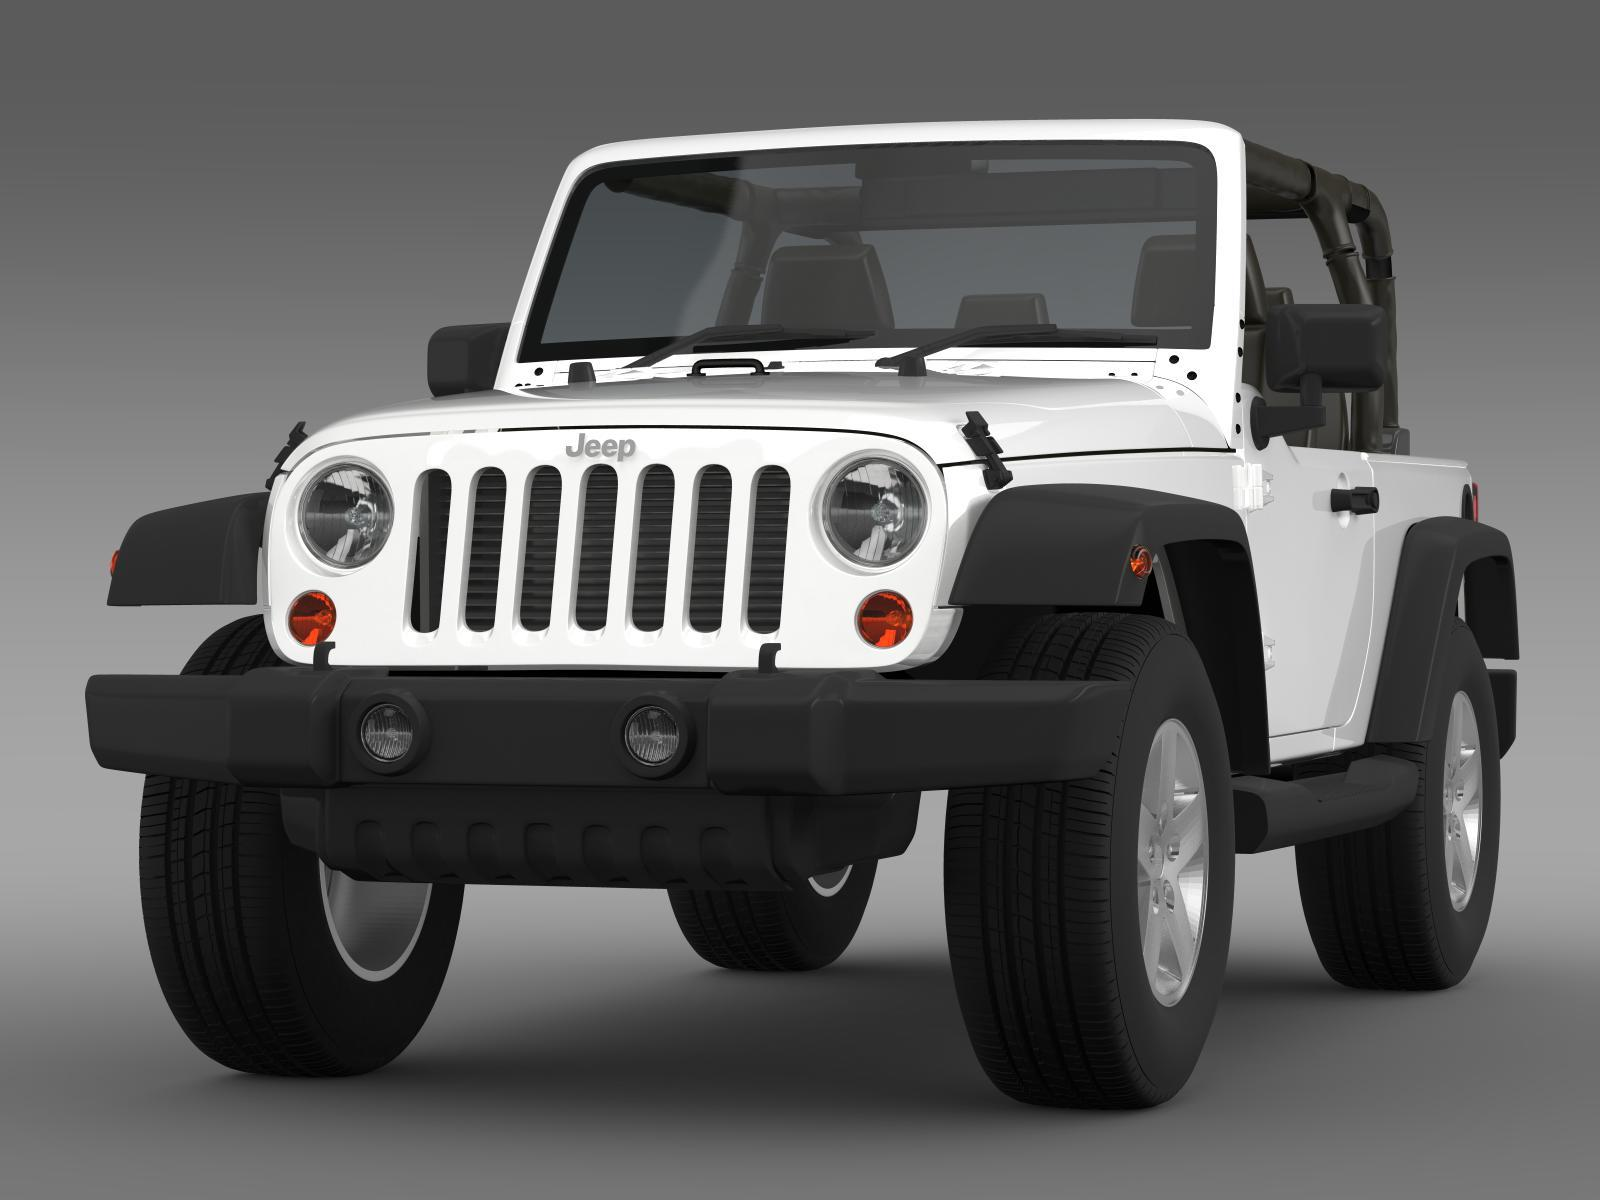 jeep wrangler islander edition 2010 by creator 3d 3docean. Black Bedroom Furniture Sets. Home Design Ideas